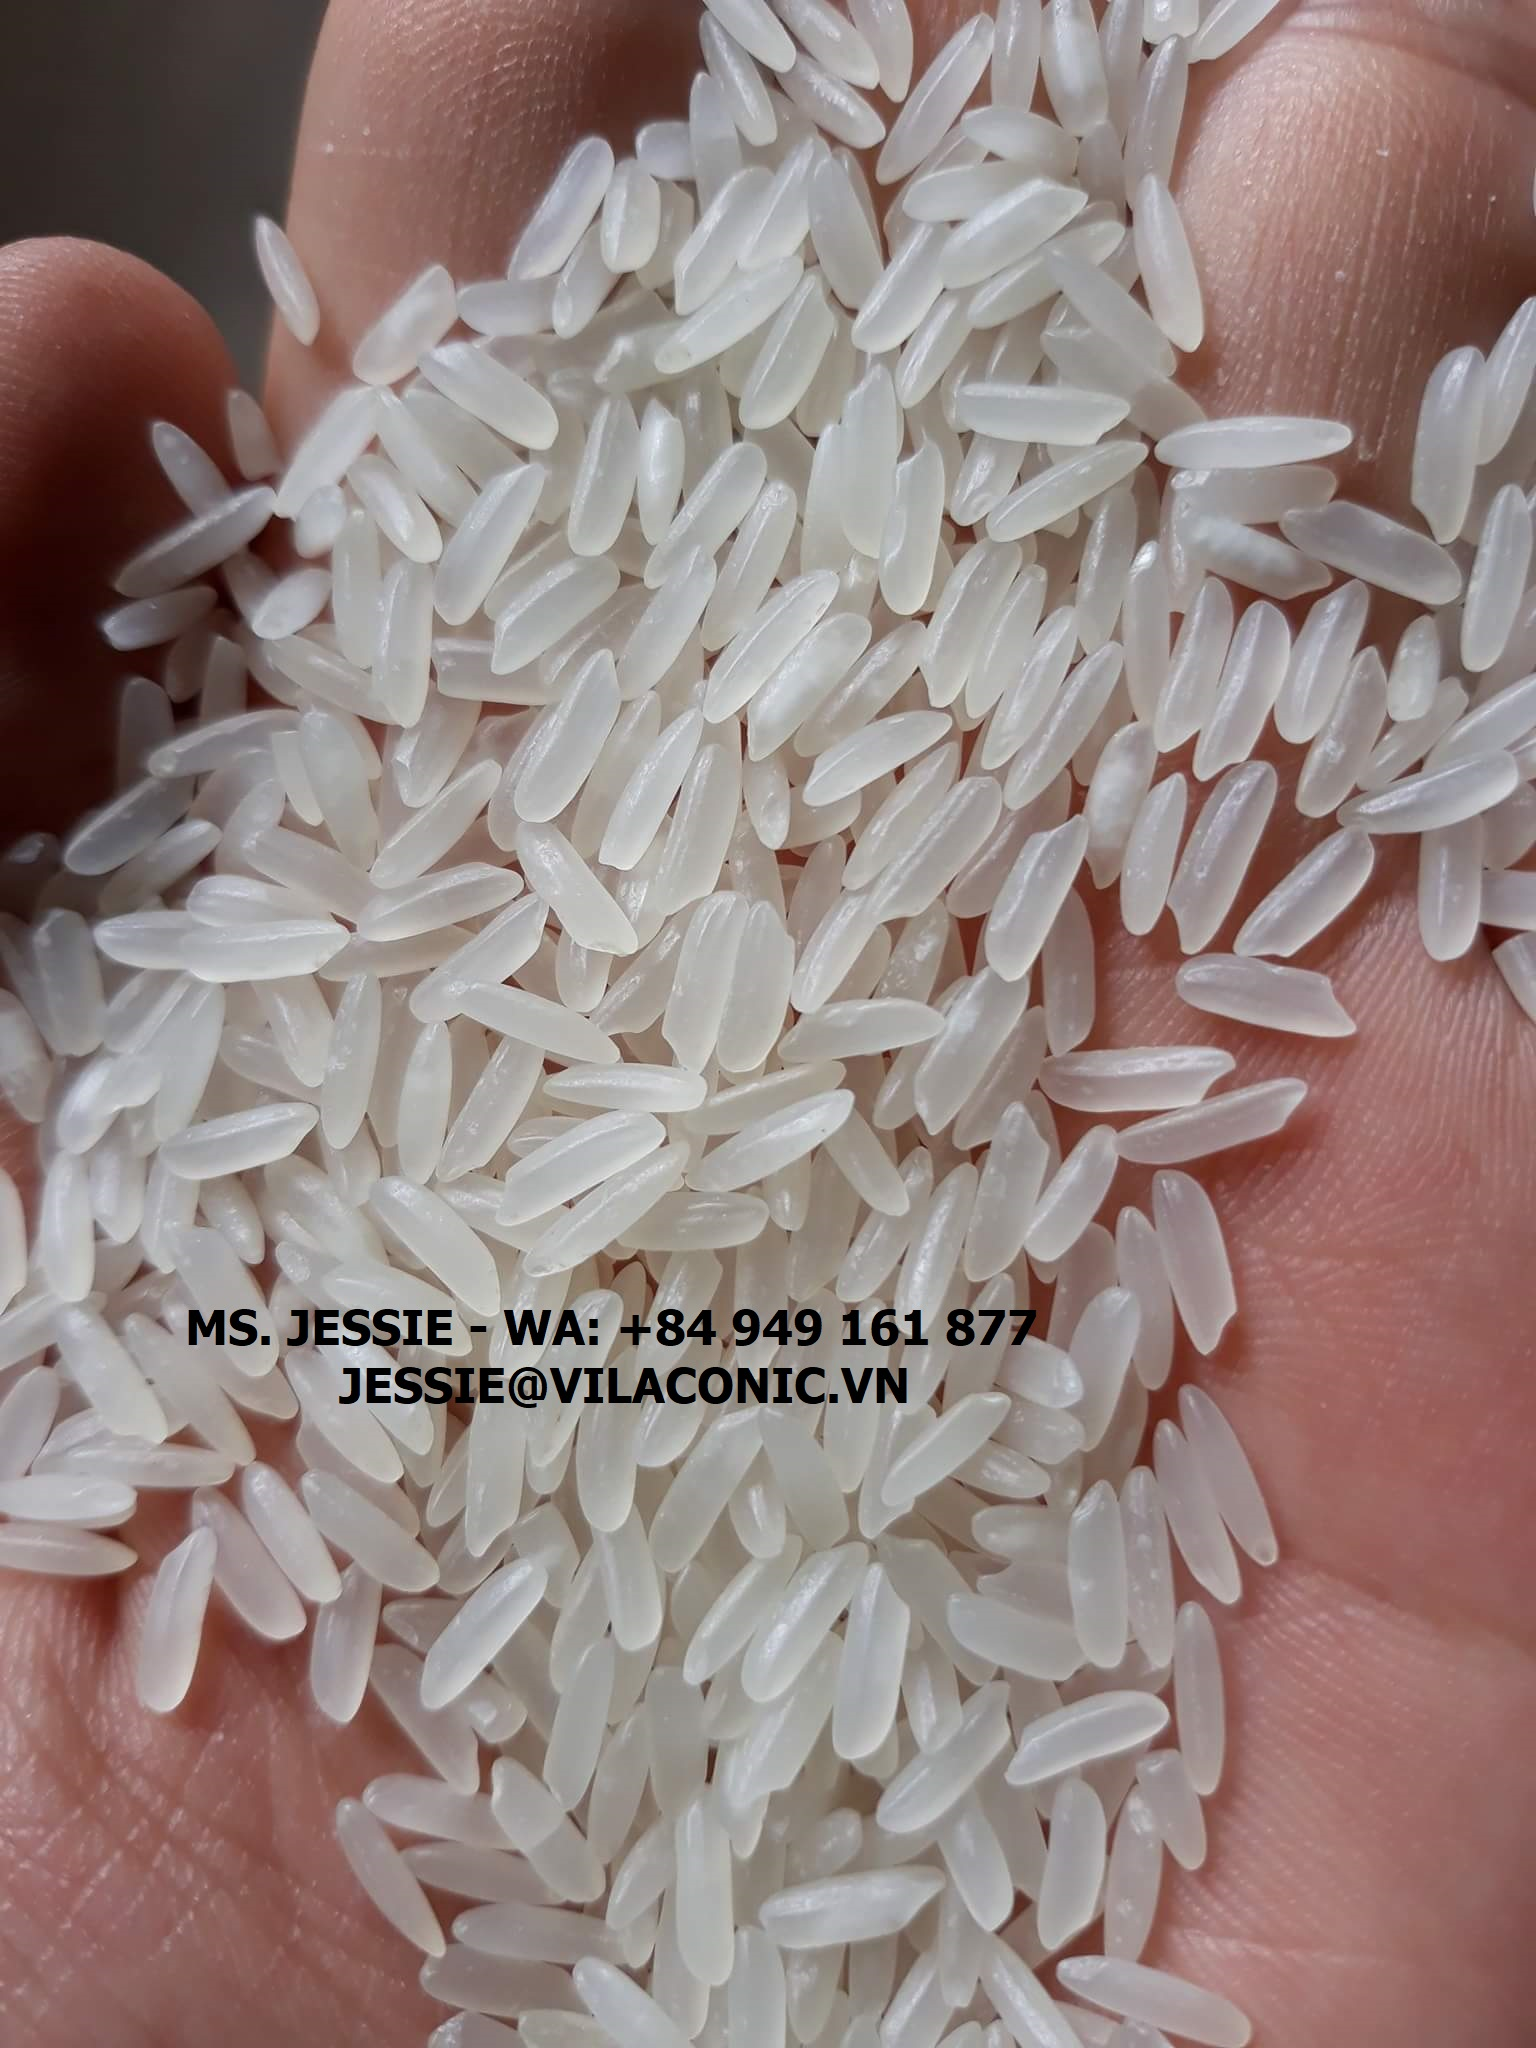 TOP MARKET CALROSE RICE - PACIFIC ISLANDS - AAA QUALITY - HOT PRICE - MS. JESSIE